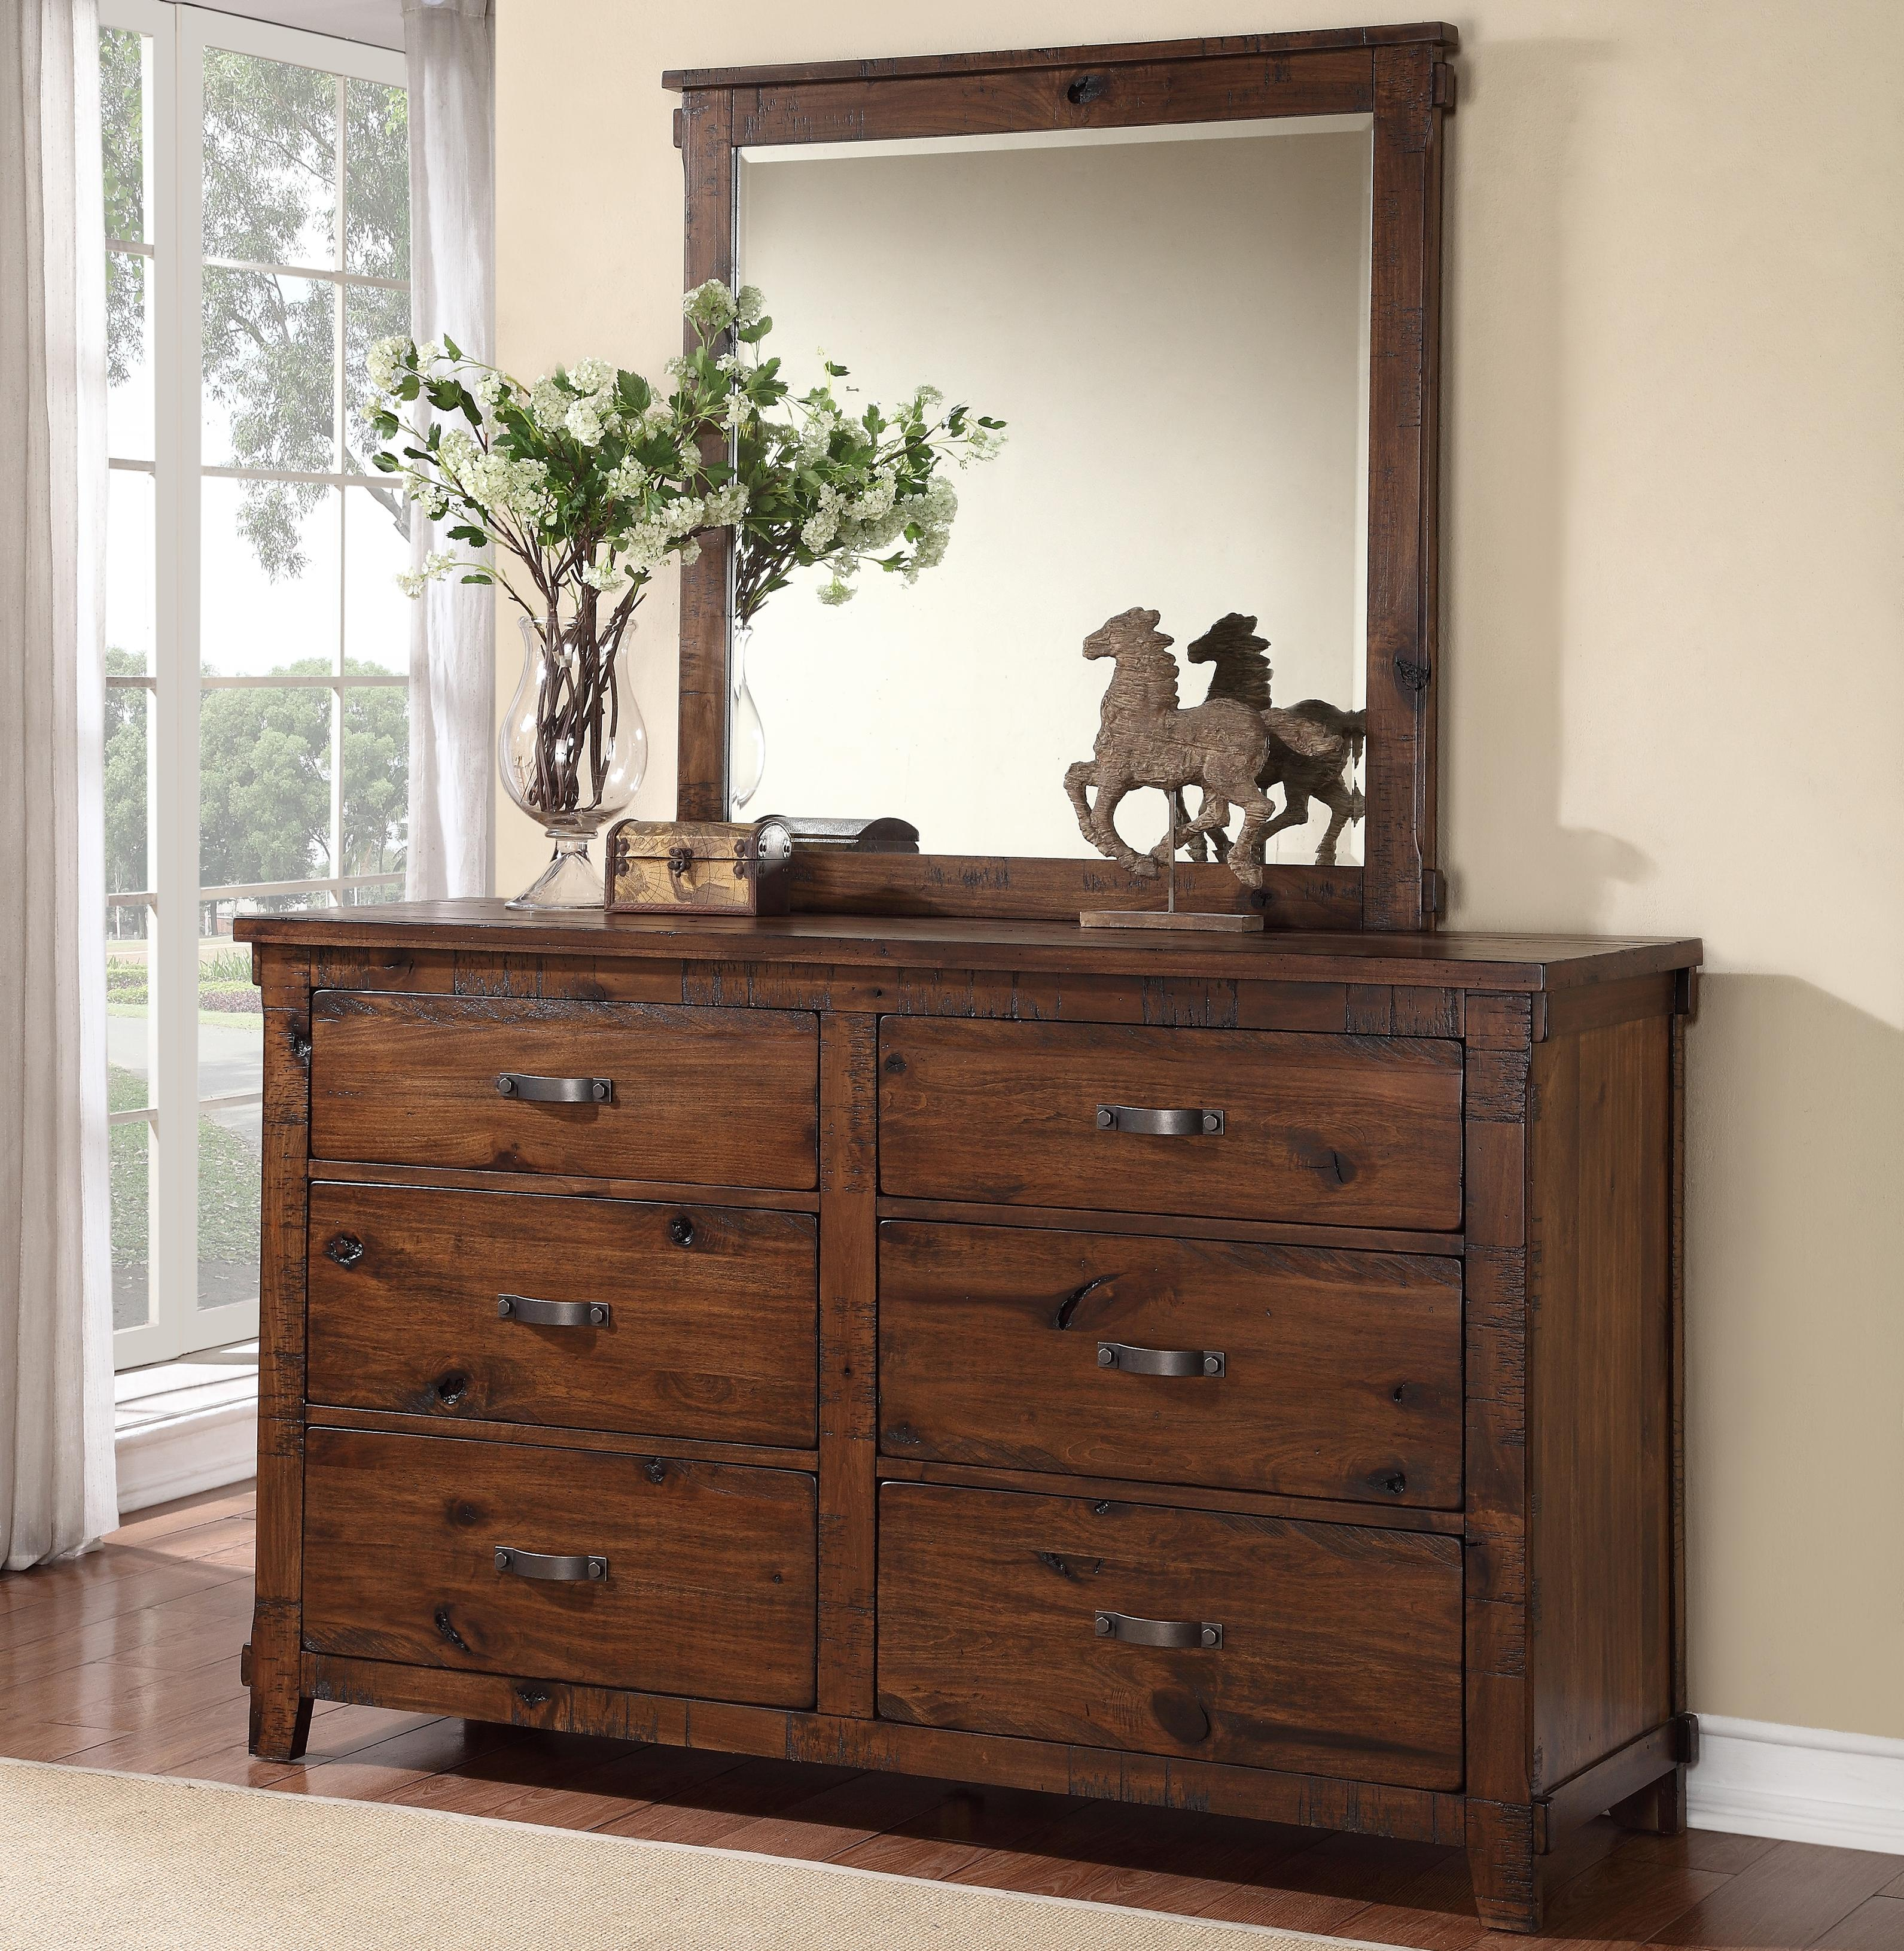 Legends Furniture Restoration 6 Drawer Dresser and Mirror - Item Number: ZRST-7013+14